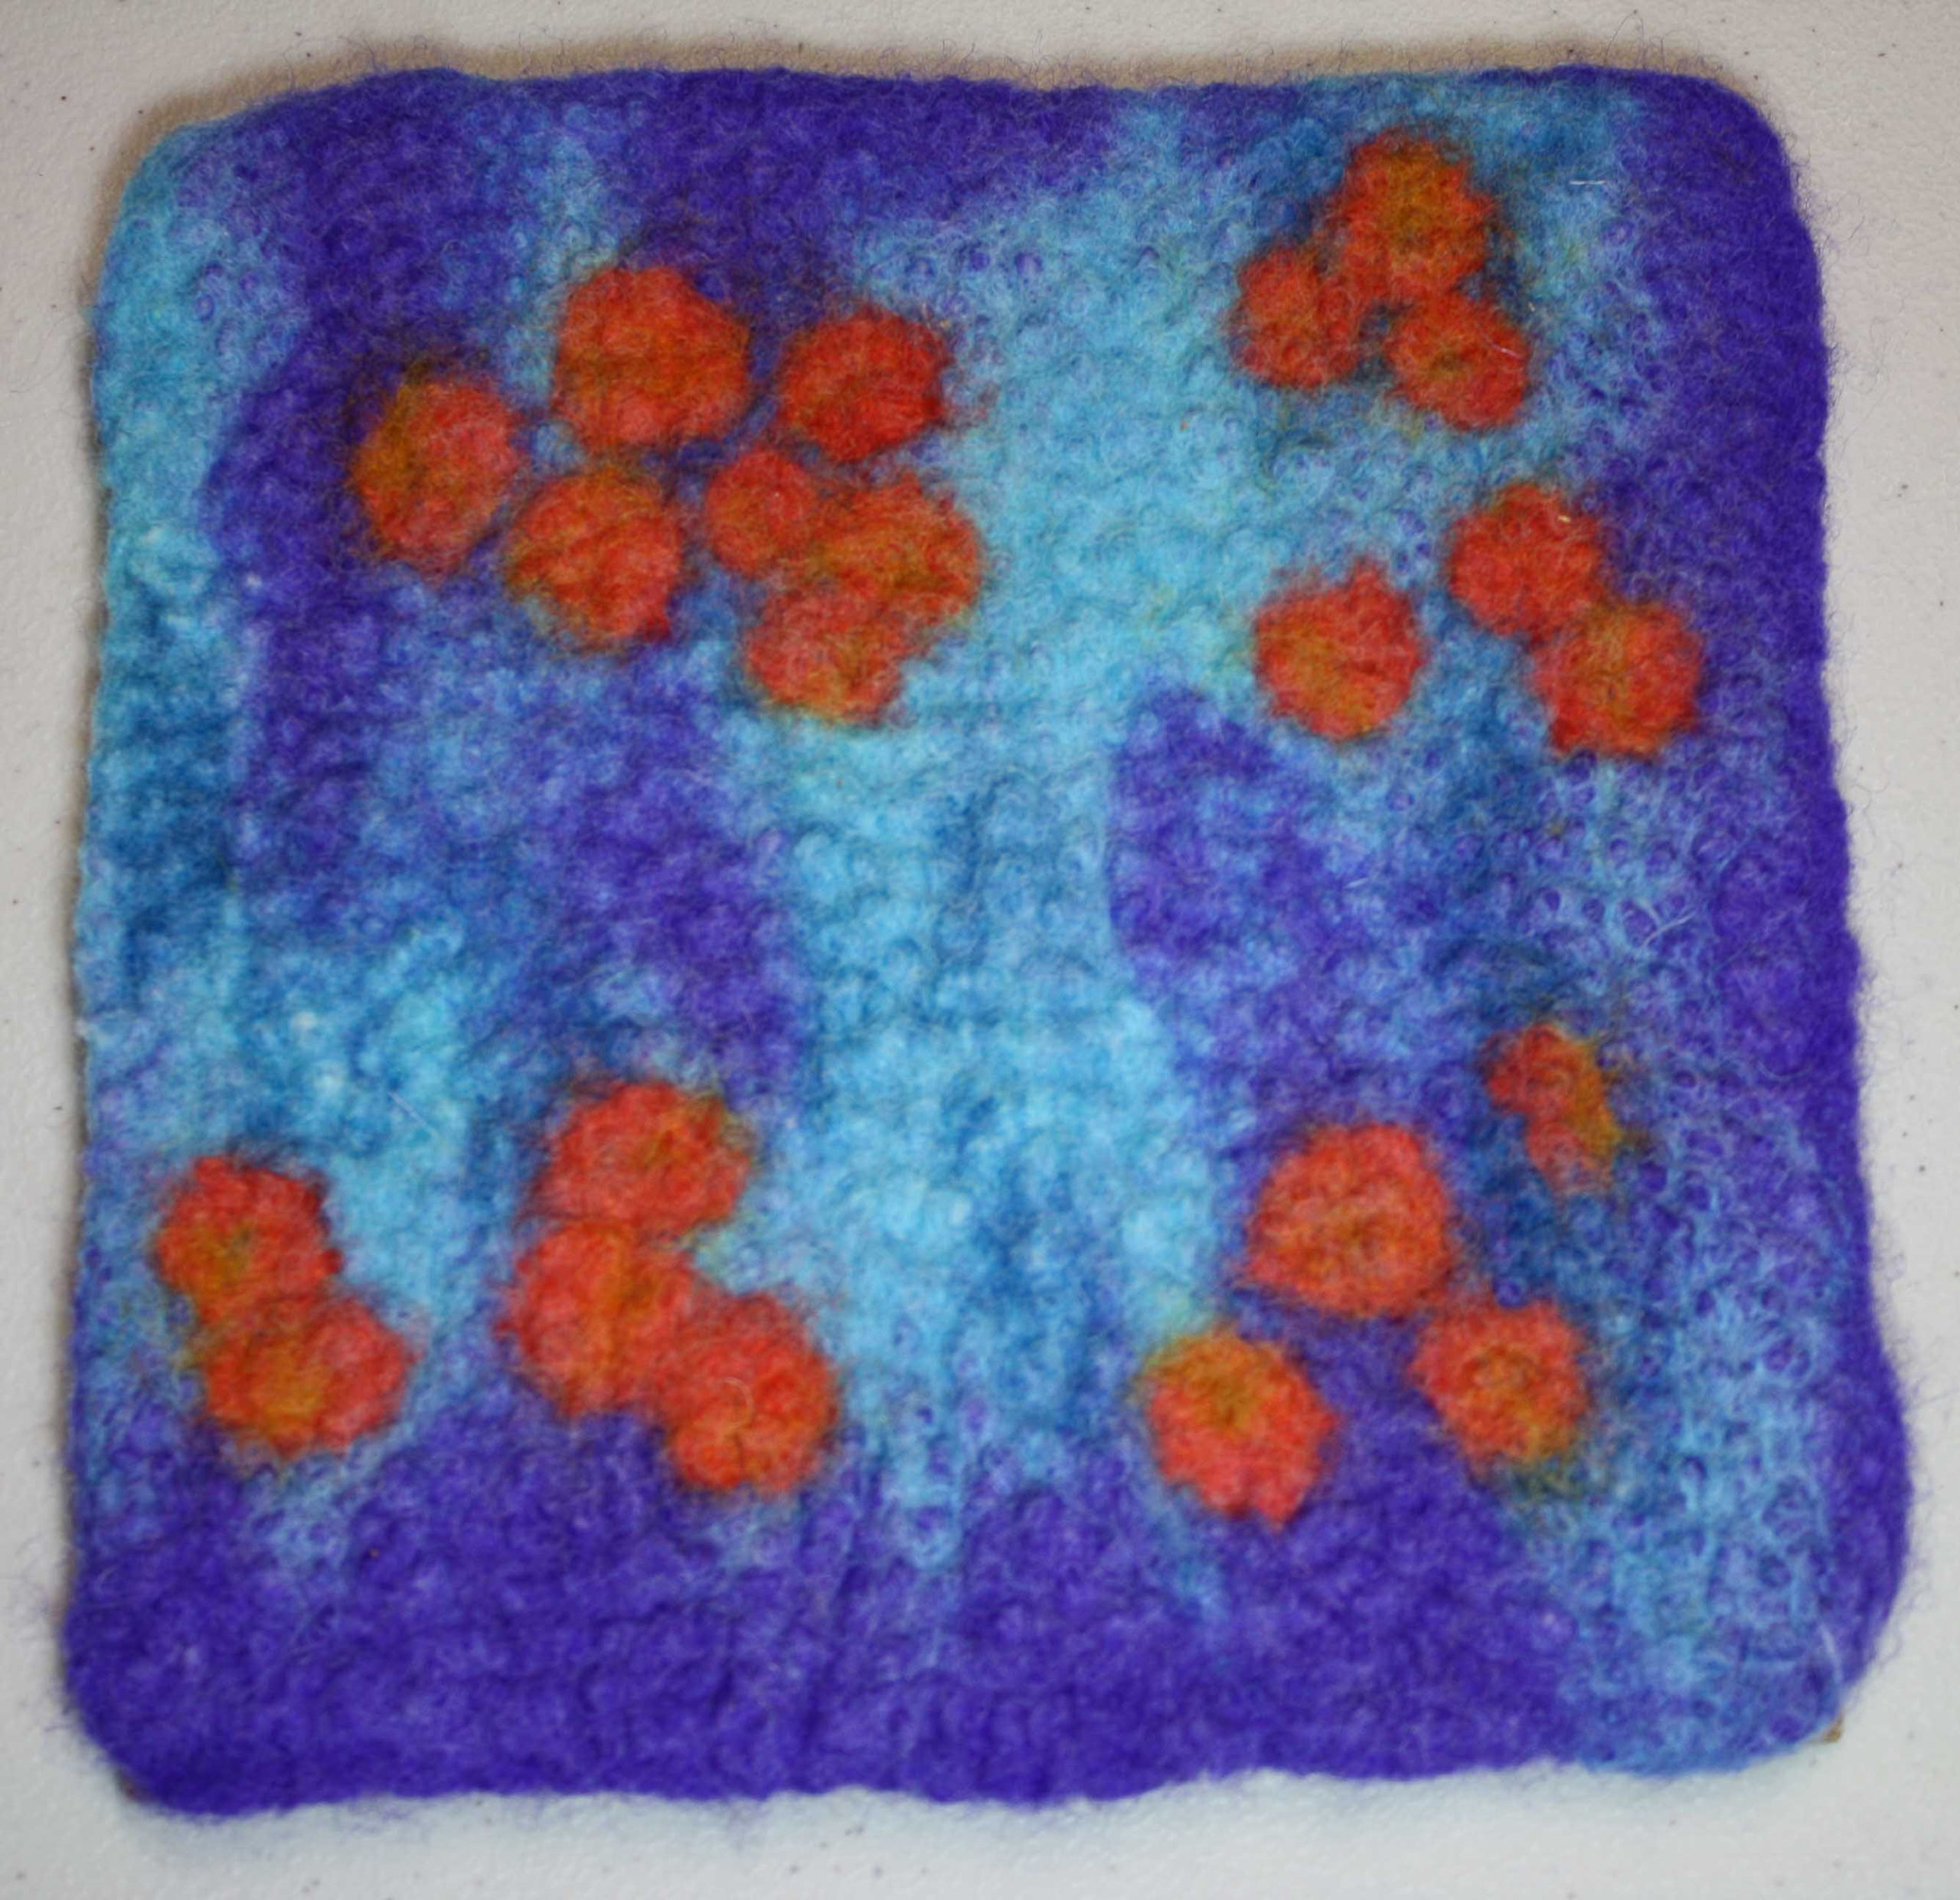 Felted square of deep and light blue wool decorated burnt orange circles of wool.